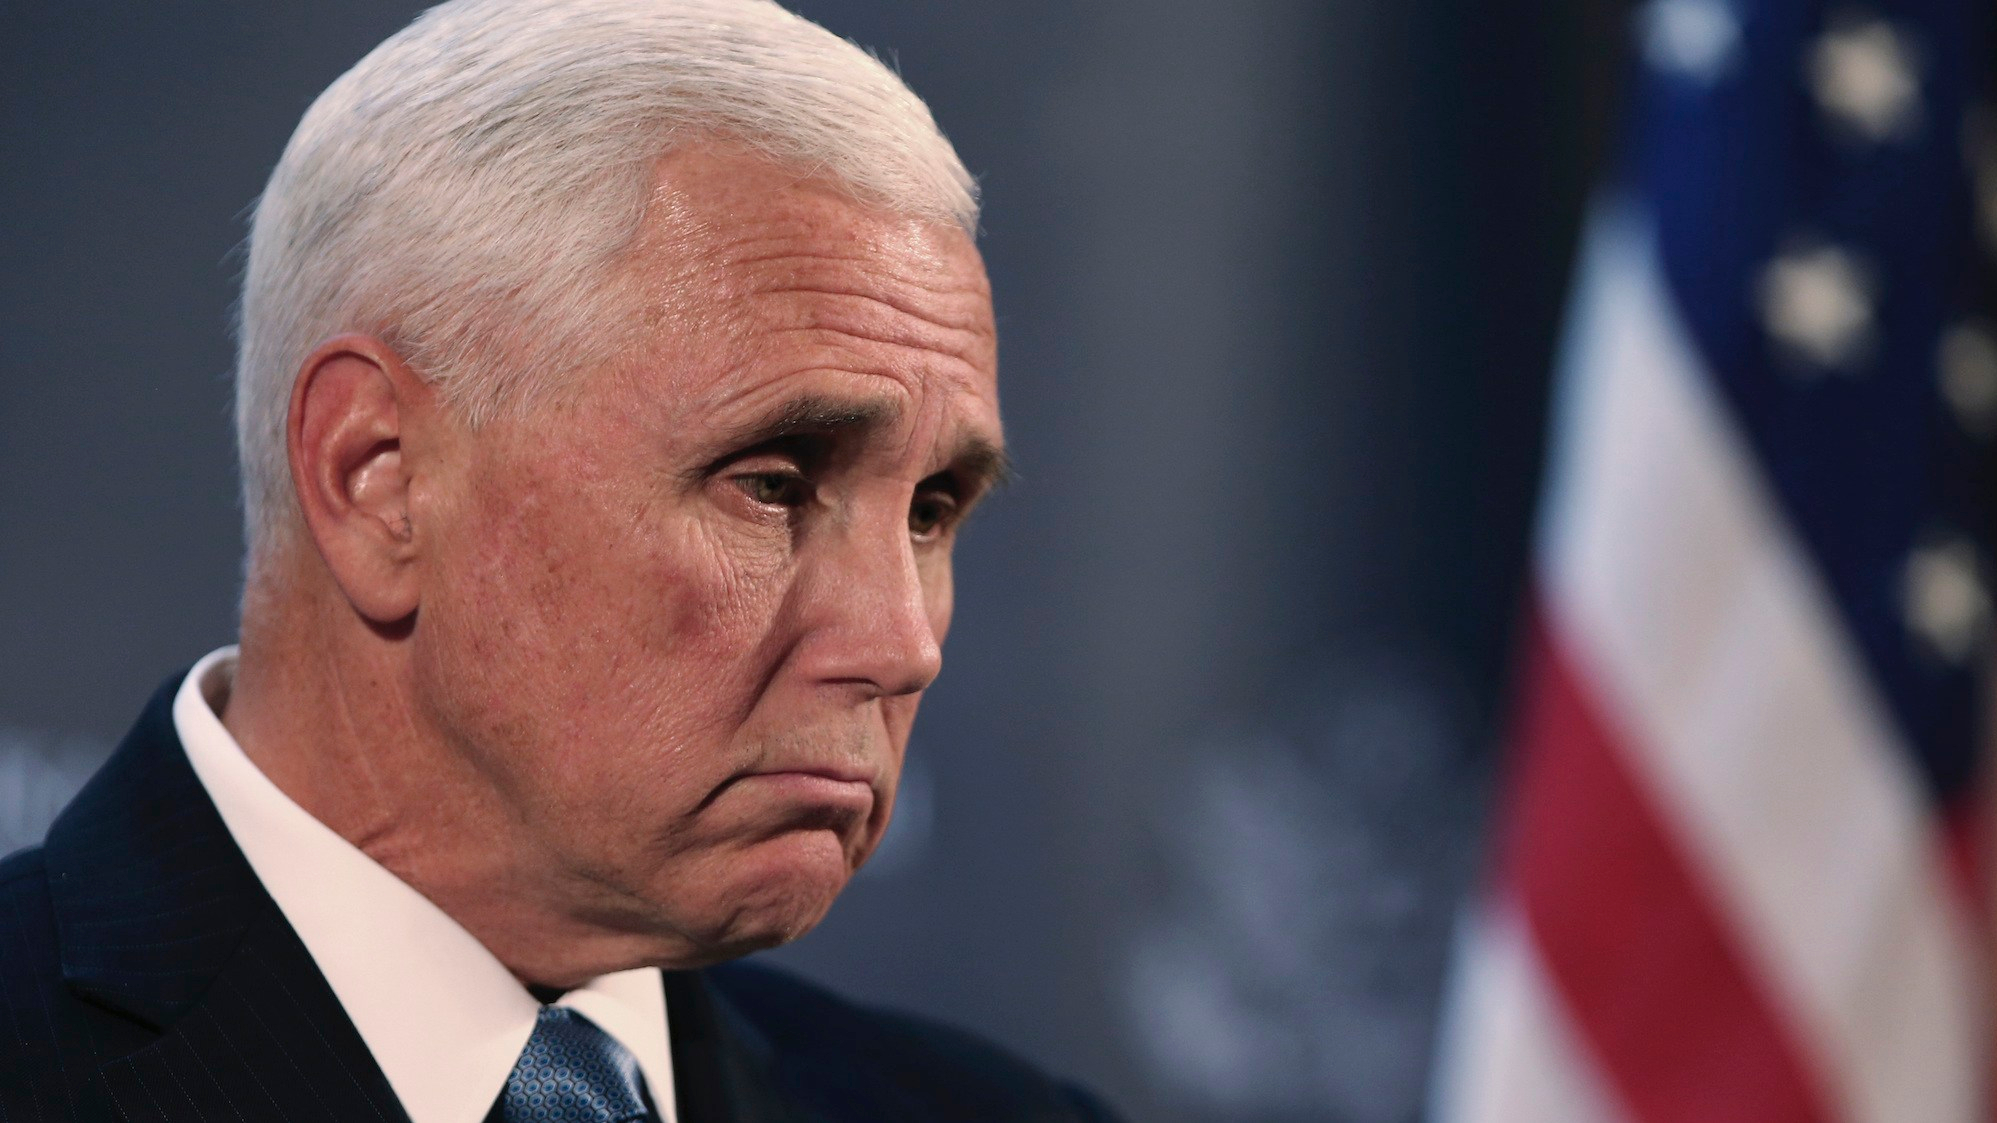 Pence,Mike Pence signs book deal,Mike Pence Writes Memoir,breaking news mike pence,mike pence news, Pence signs multimillion-dollar deal for memoir recounting his time as Trump's purse poodle, The Politicus